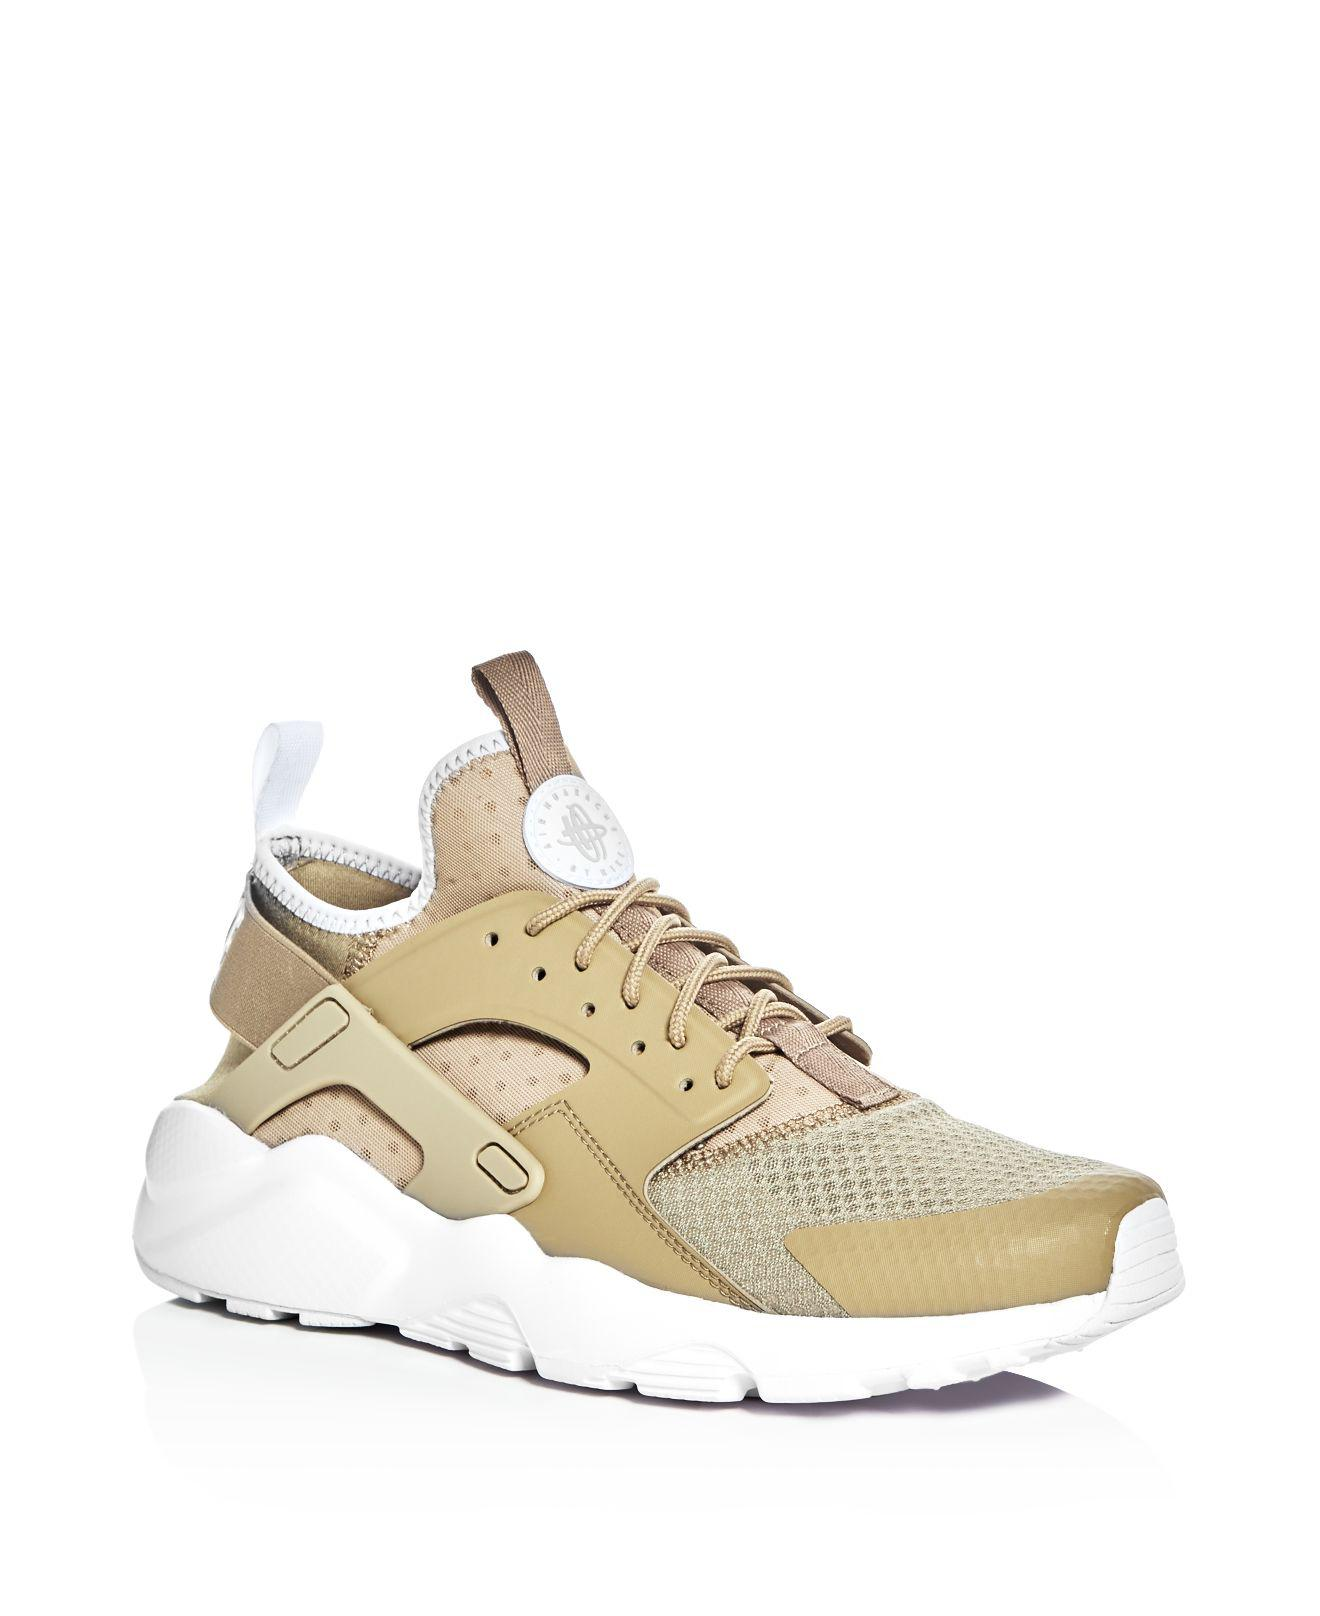 08e95aa0b69 Lyst - Nike Men s Air Huarache Run Ultra Lace Up Sneakers in Natural ...